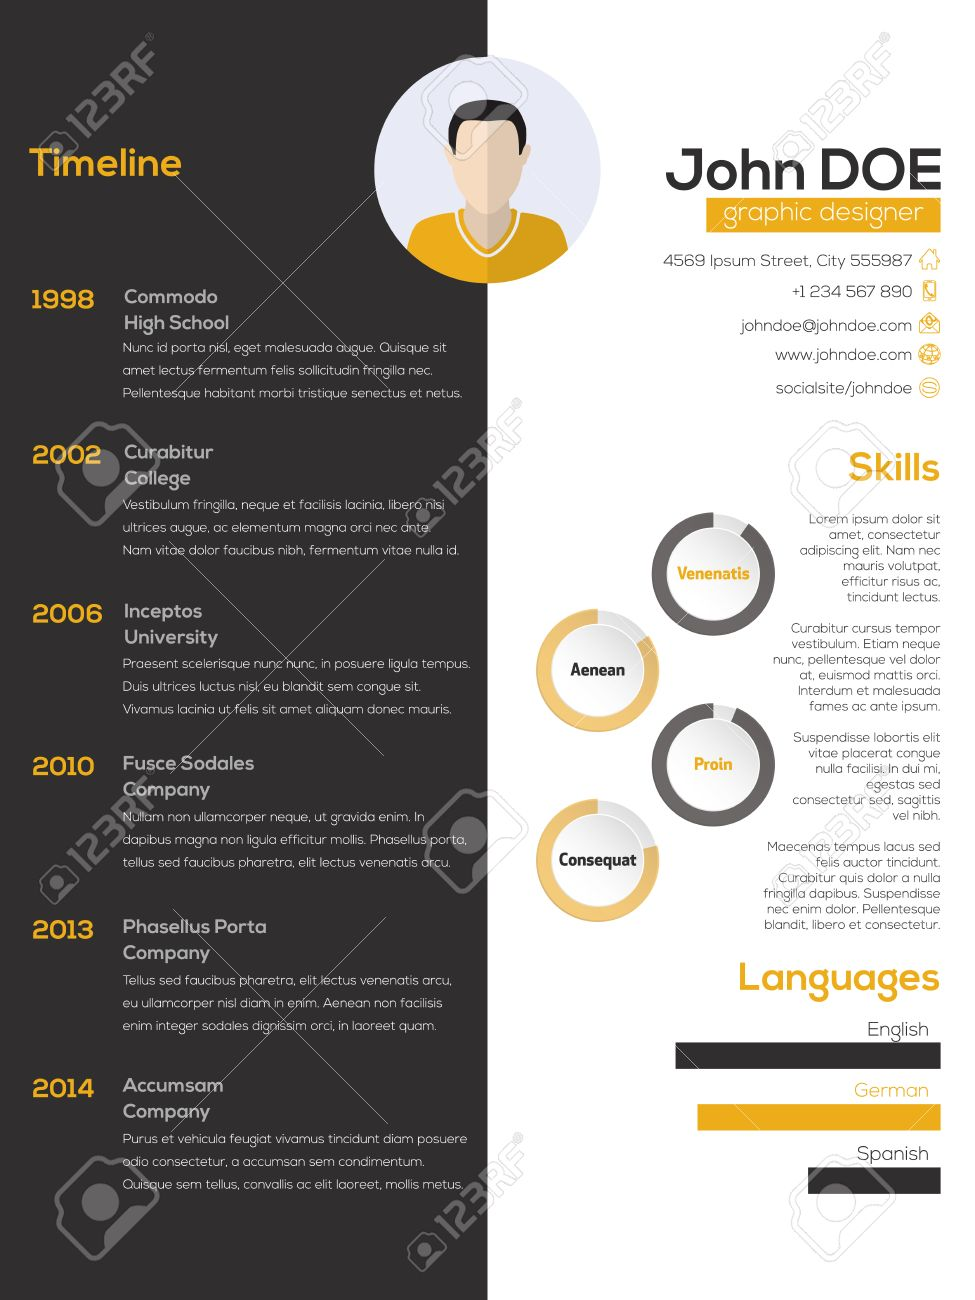 cv images stock pictures royalty cv photos and stock cv contrast resume cv curriculum vitae design in black white and orange illustration